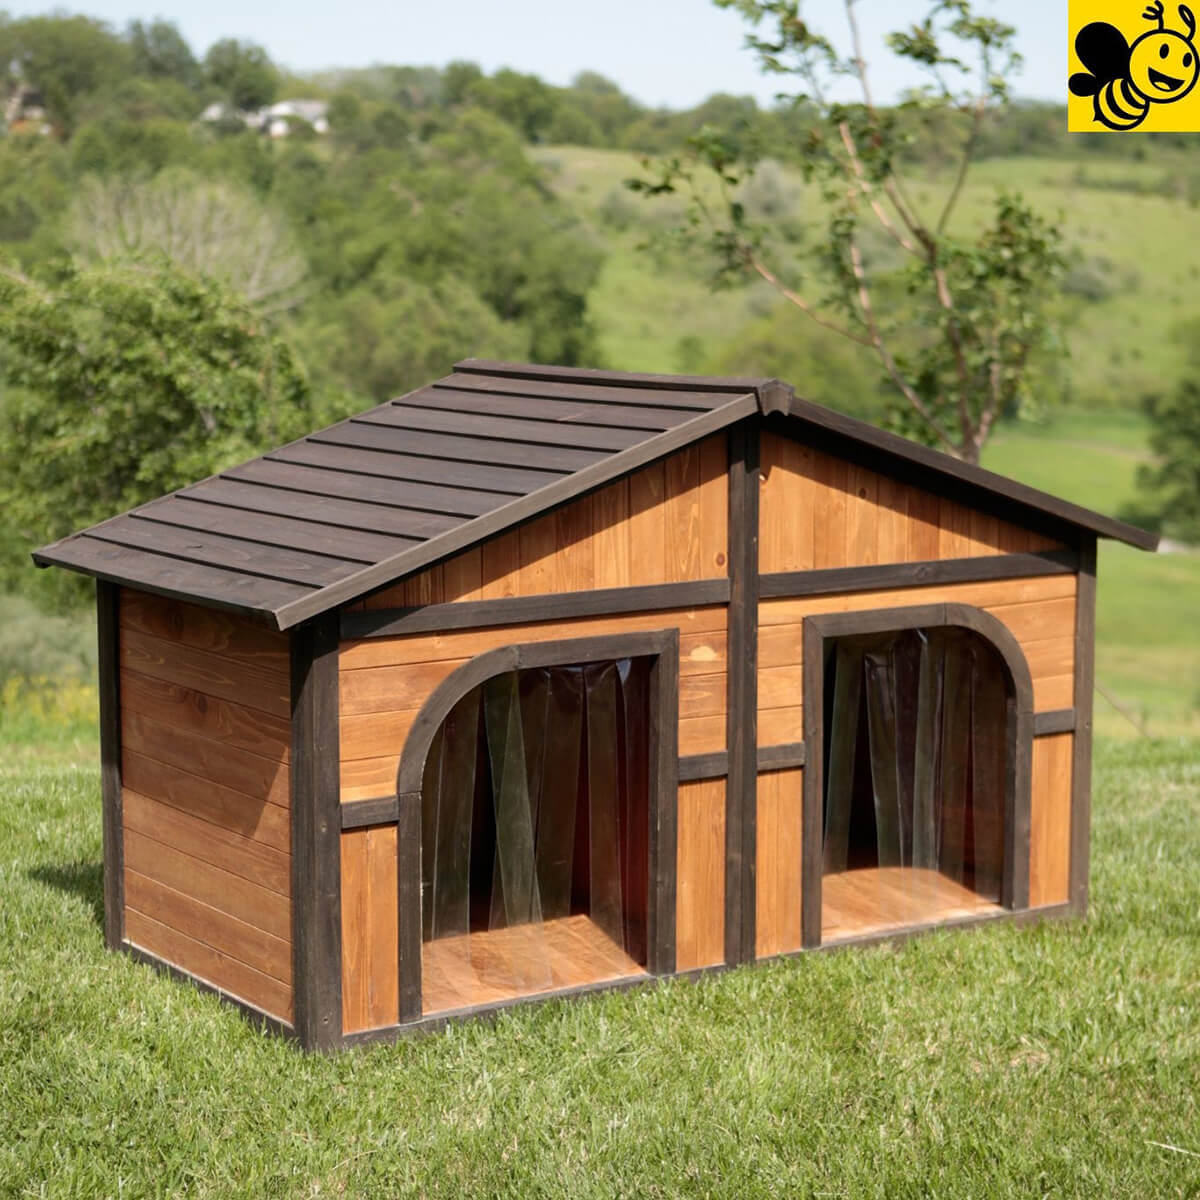 Home Design Ideas For Dogs: Two-Sided Outdoor Dog Kennel Homebnc